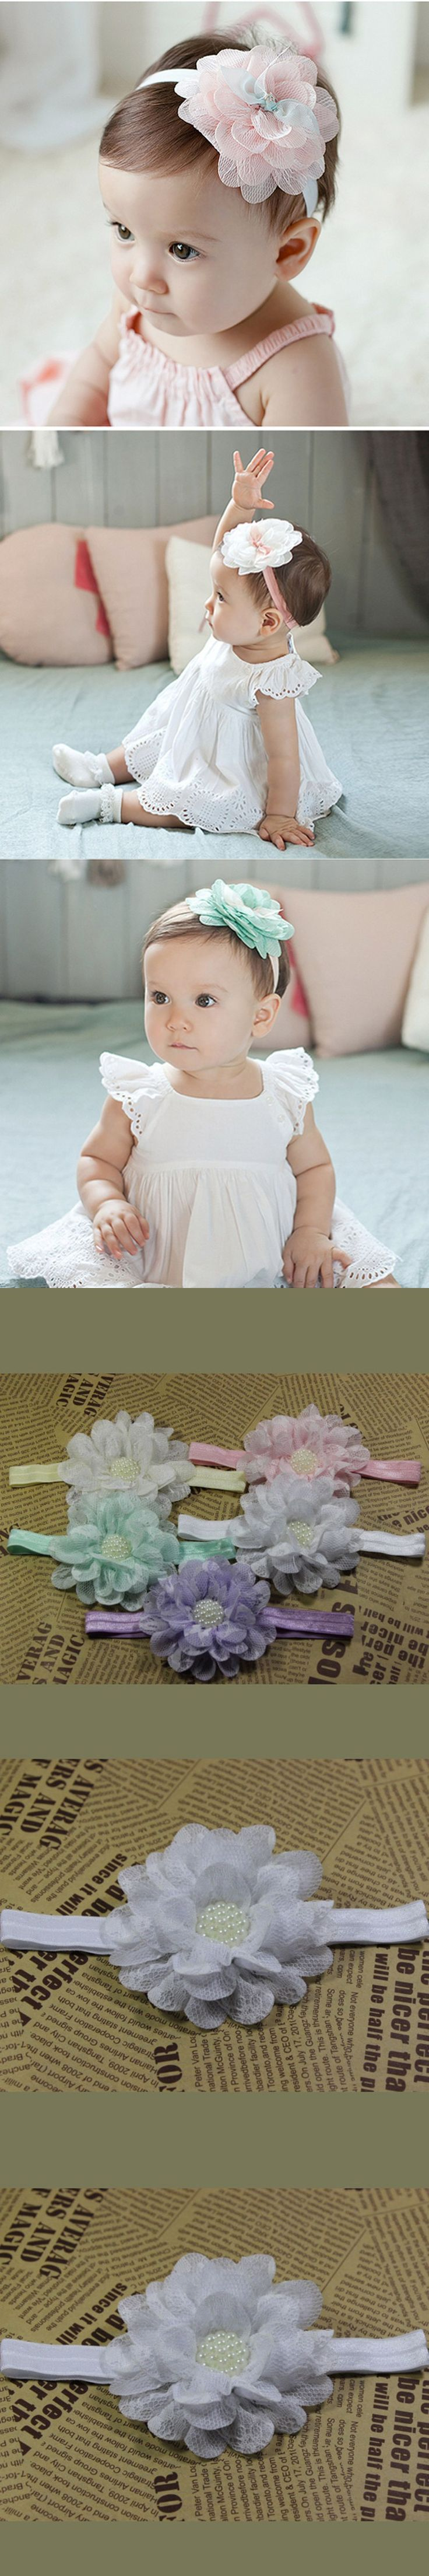 New Born Baby Girl Headbands Cute Kids Elastic Baby Headbands Infant Headband Baby Girl Hairbands Newborn Headwear Accessories